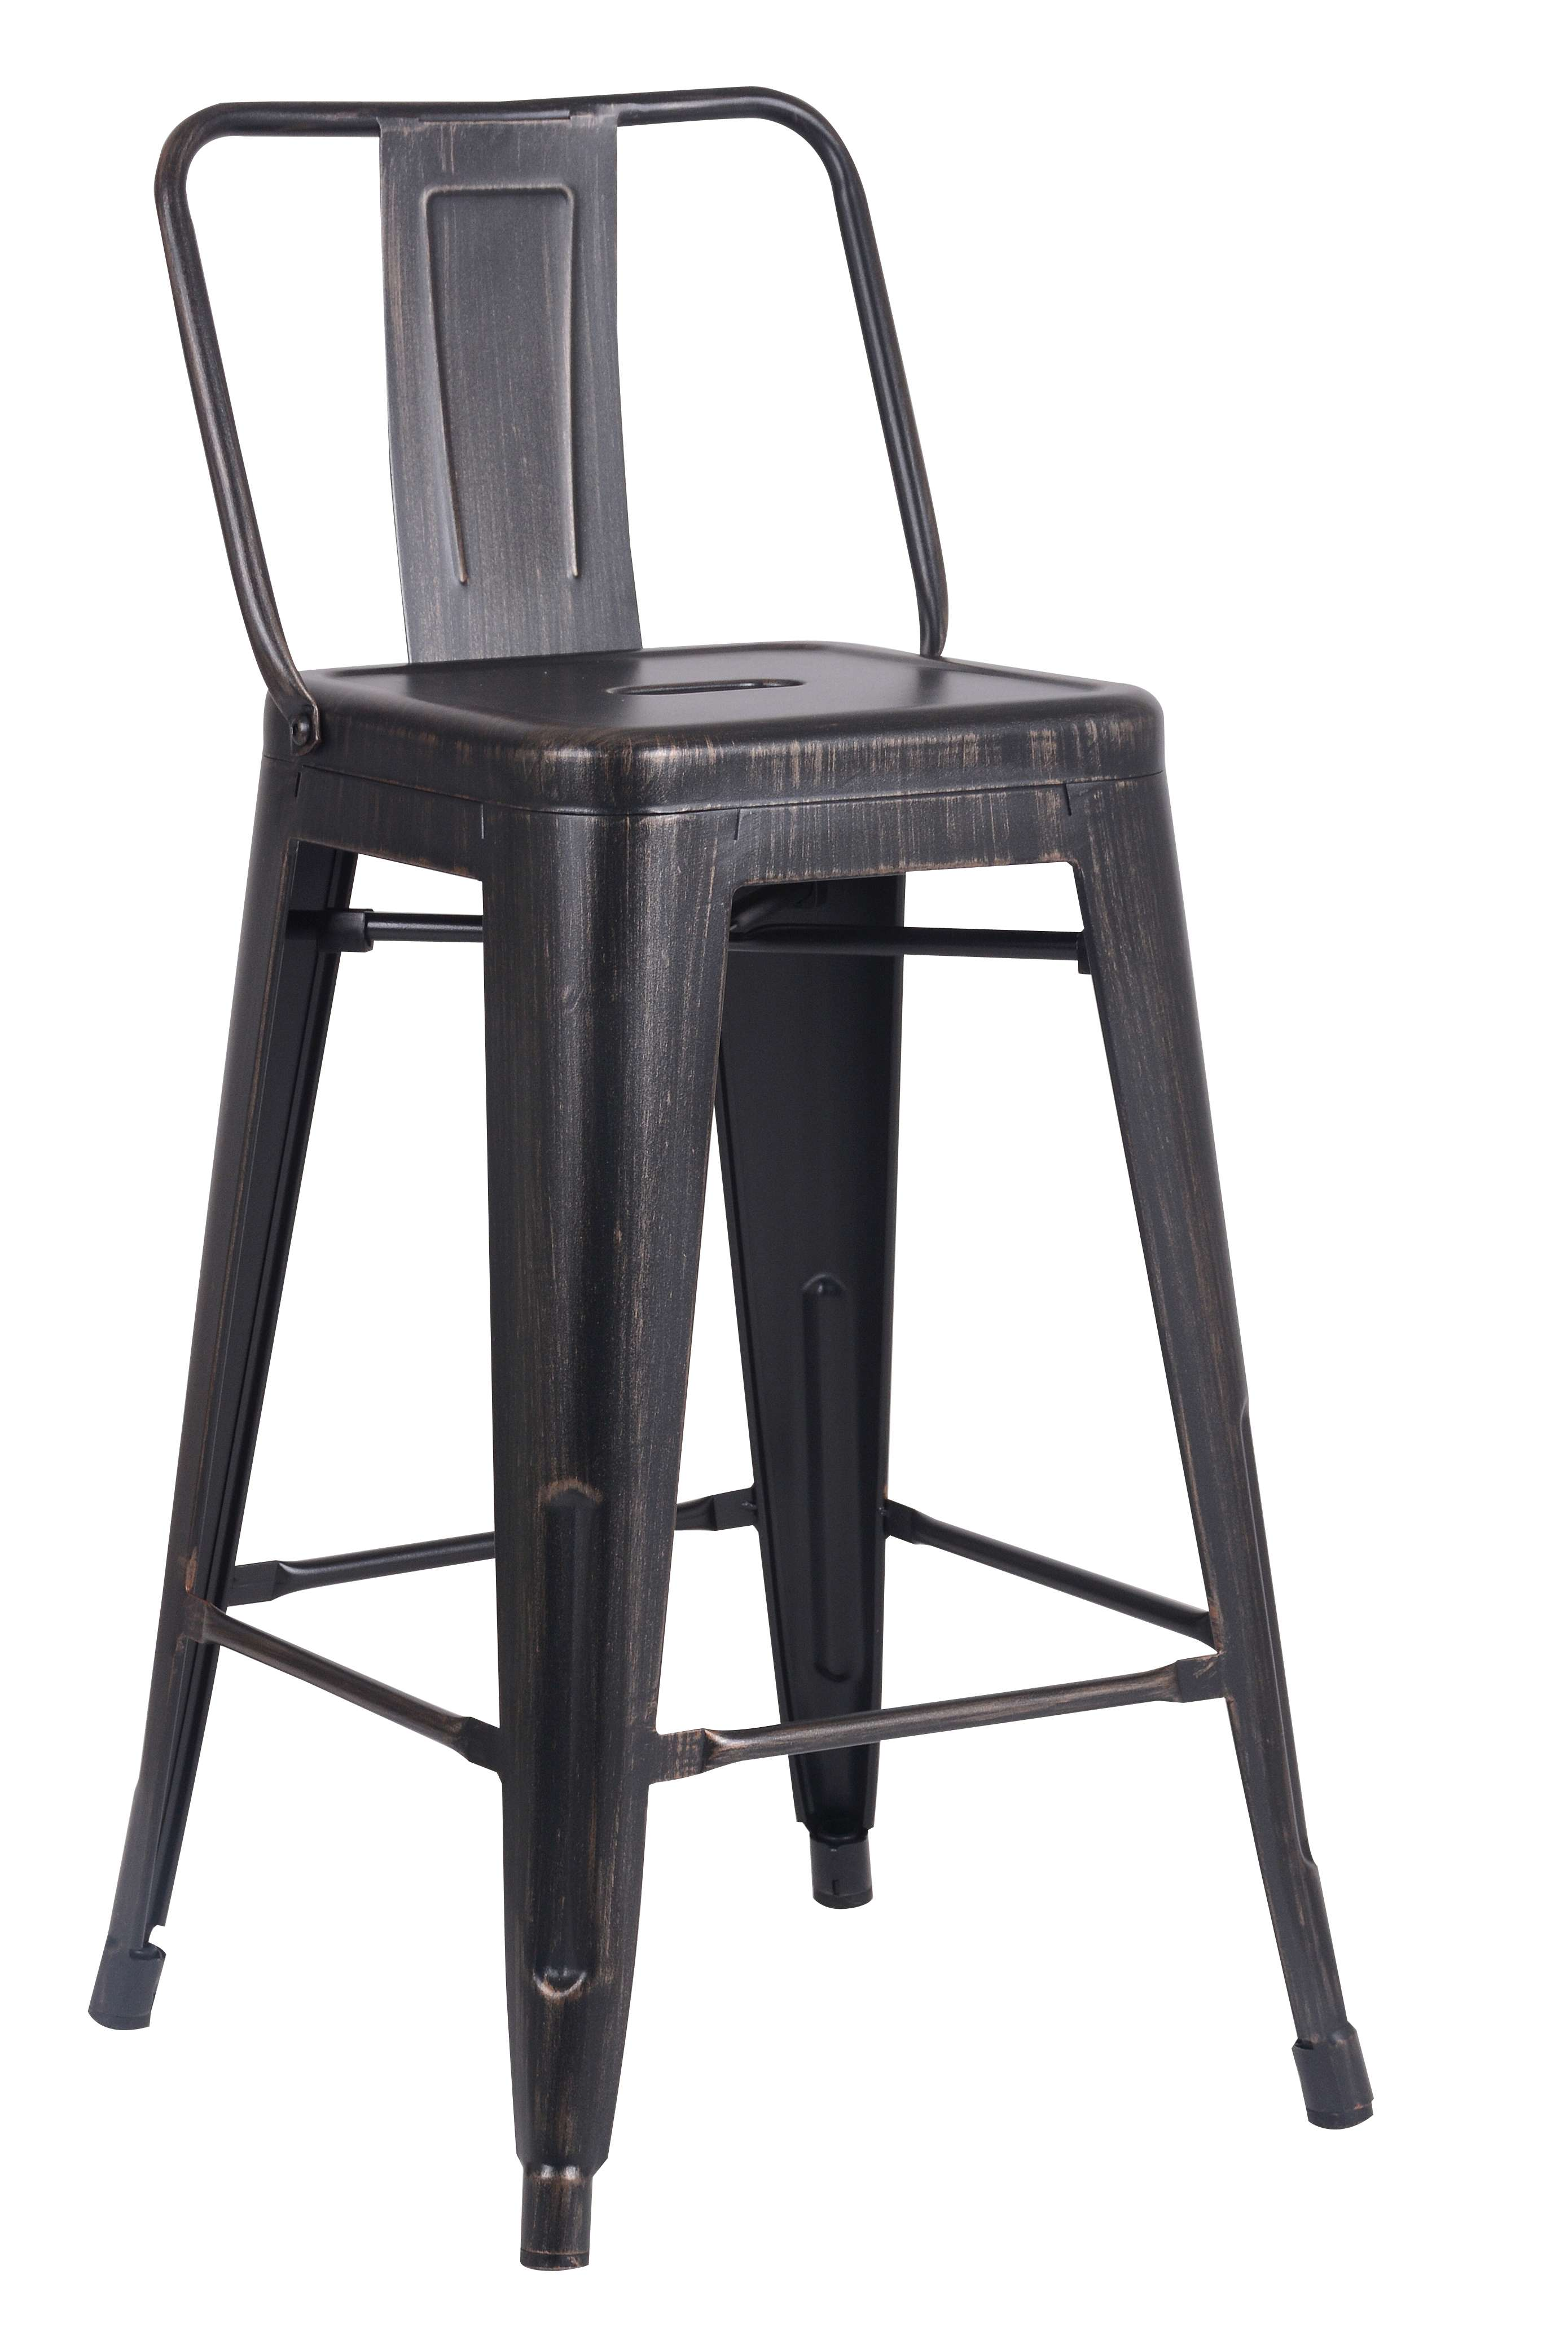 Outstanding Ac Pacific Acbs02 24 Smb Ibusinesslaw Wood Chair Design Ideas Ibusinesslaworg